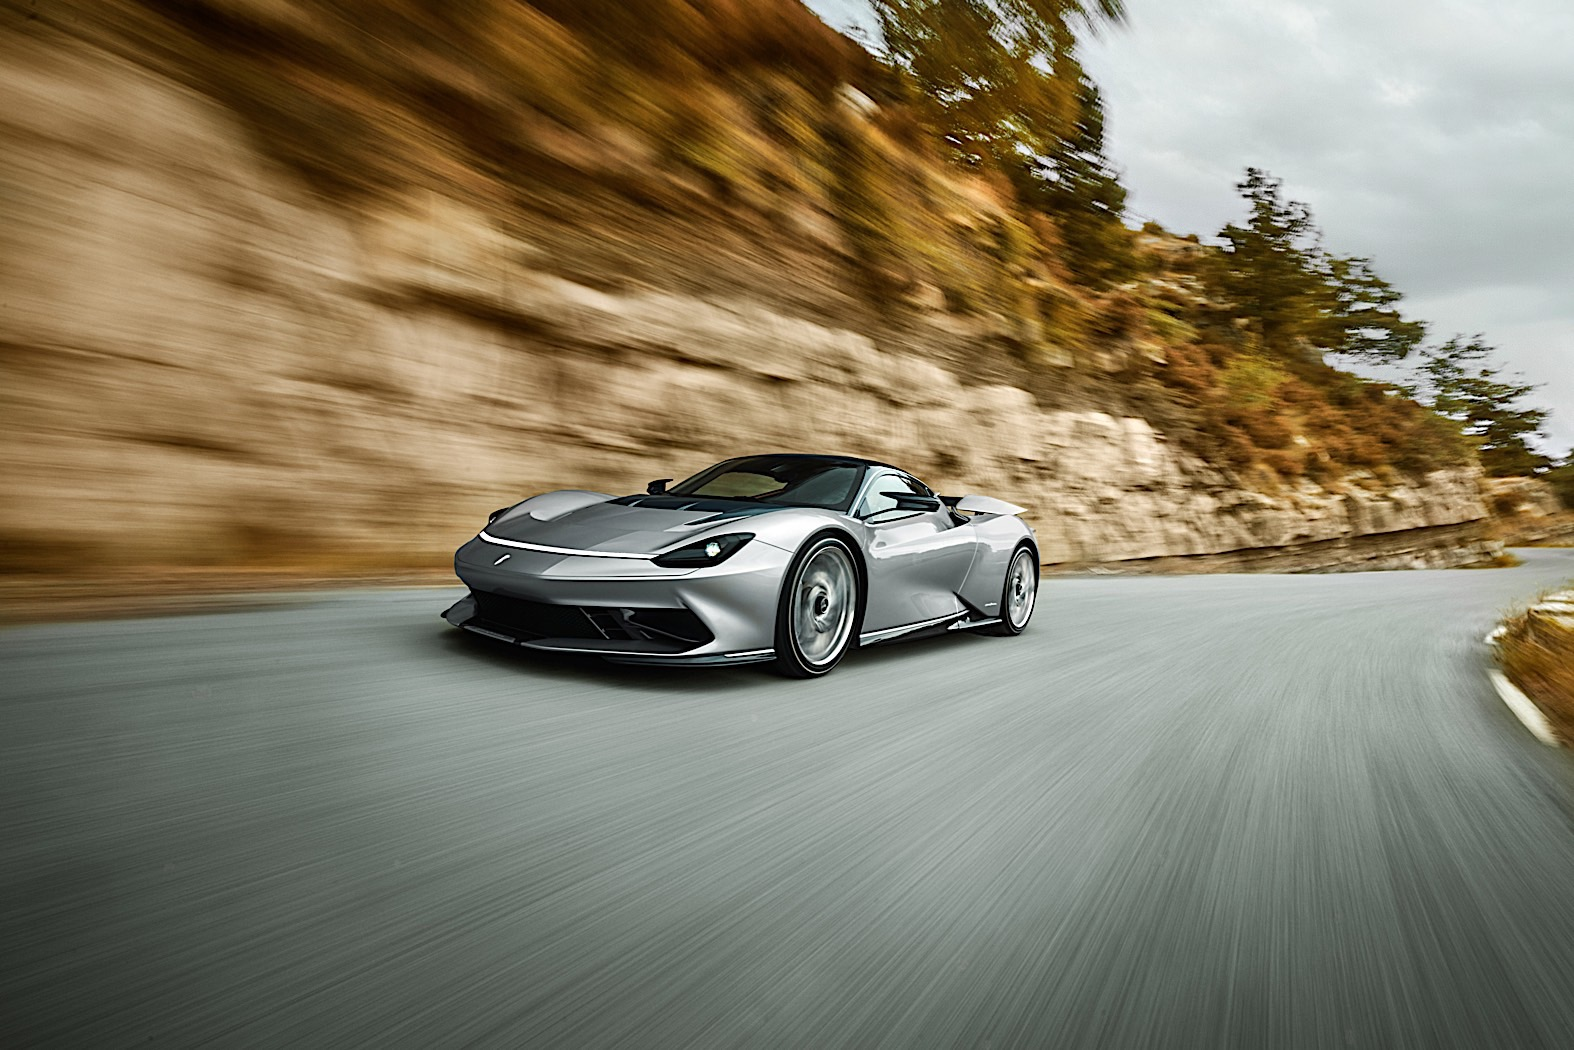 Pininfarina Battista na putu ka Pebble Beach Concours d'Elegance (VIDEO)